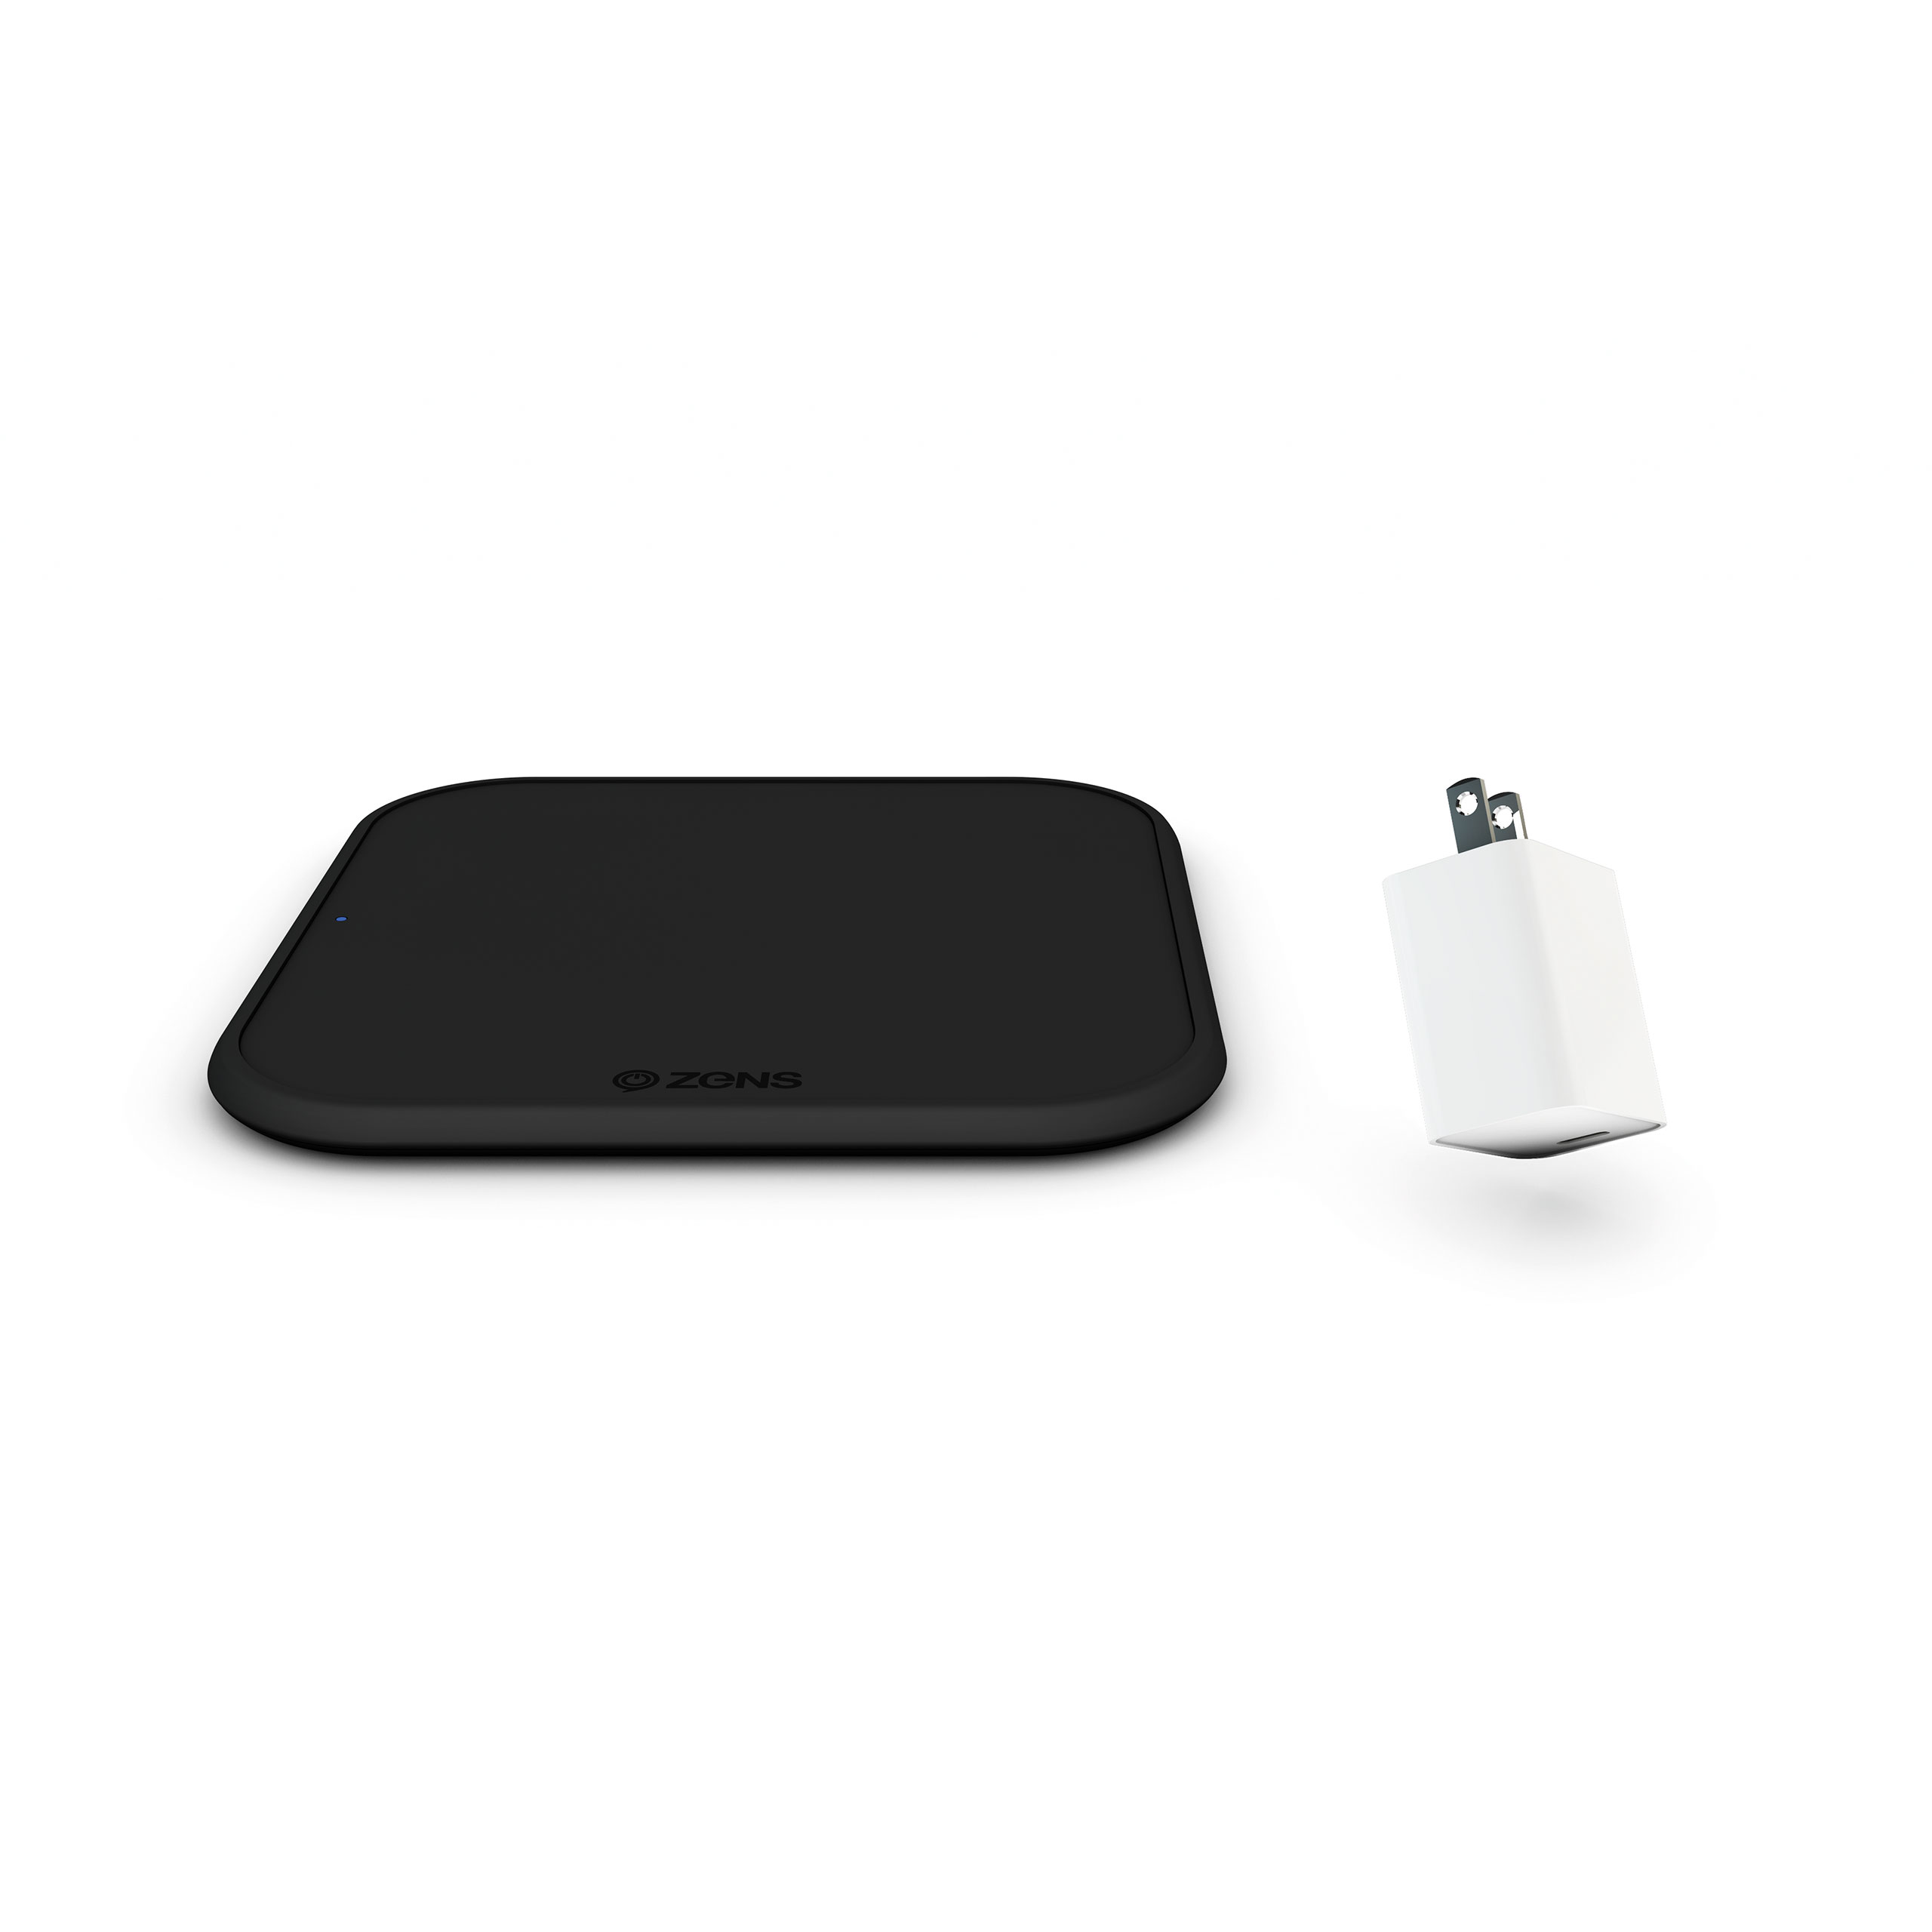 ZESC12BPD/02- Zens iPhone Starter Pack Wireless Charger + Additional 18W USB-C PD Power Adapter Pack Frontview